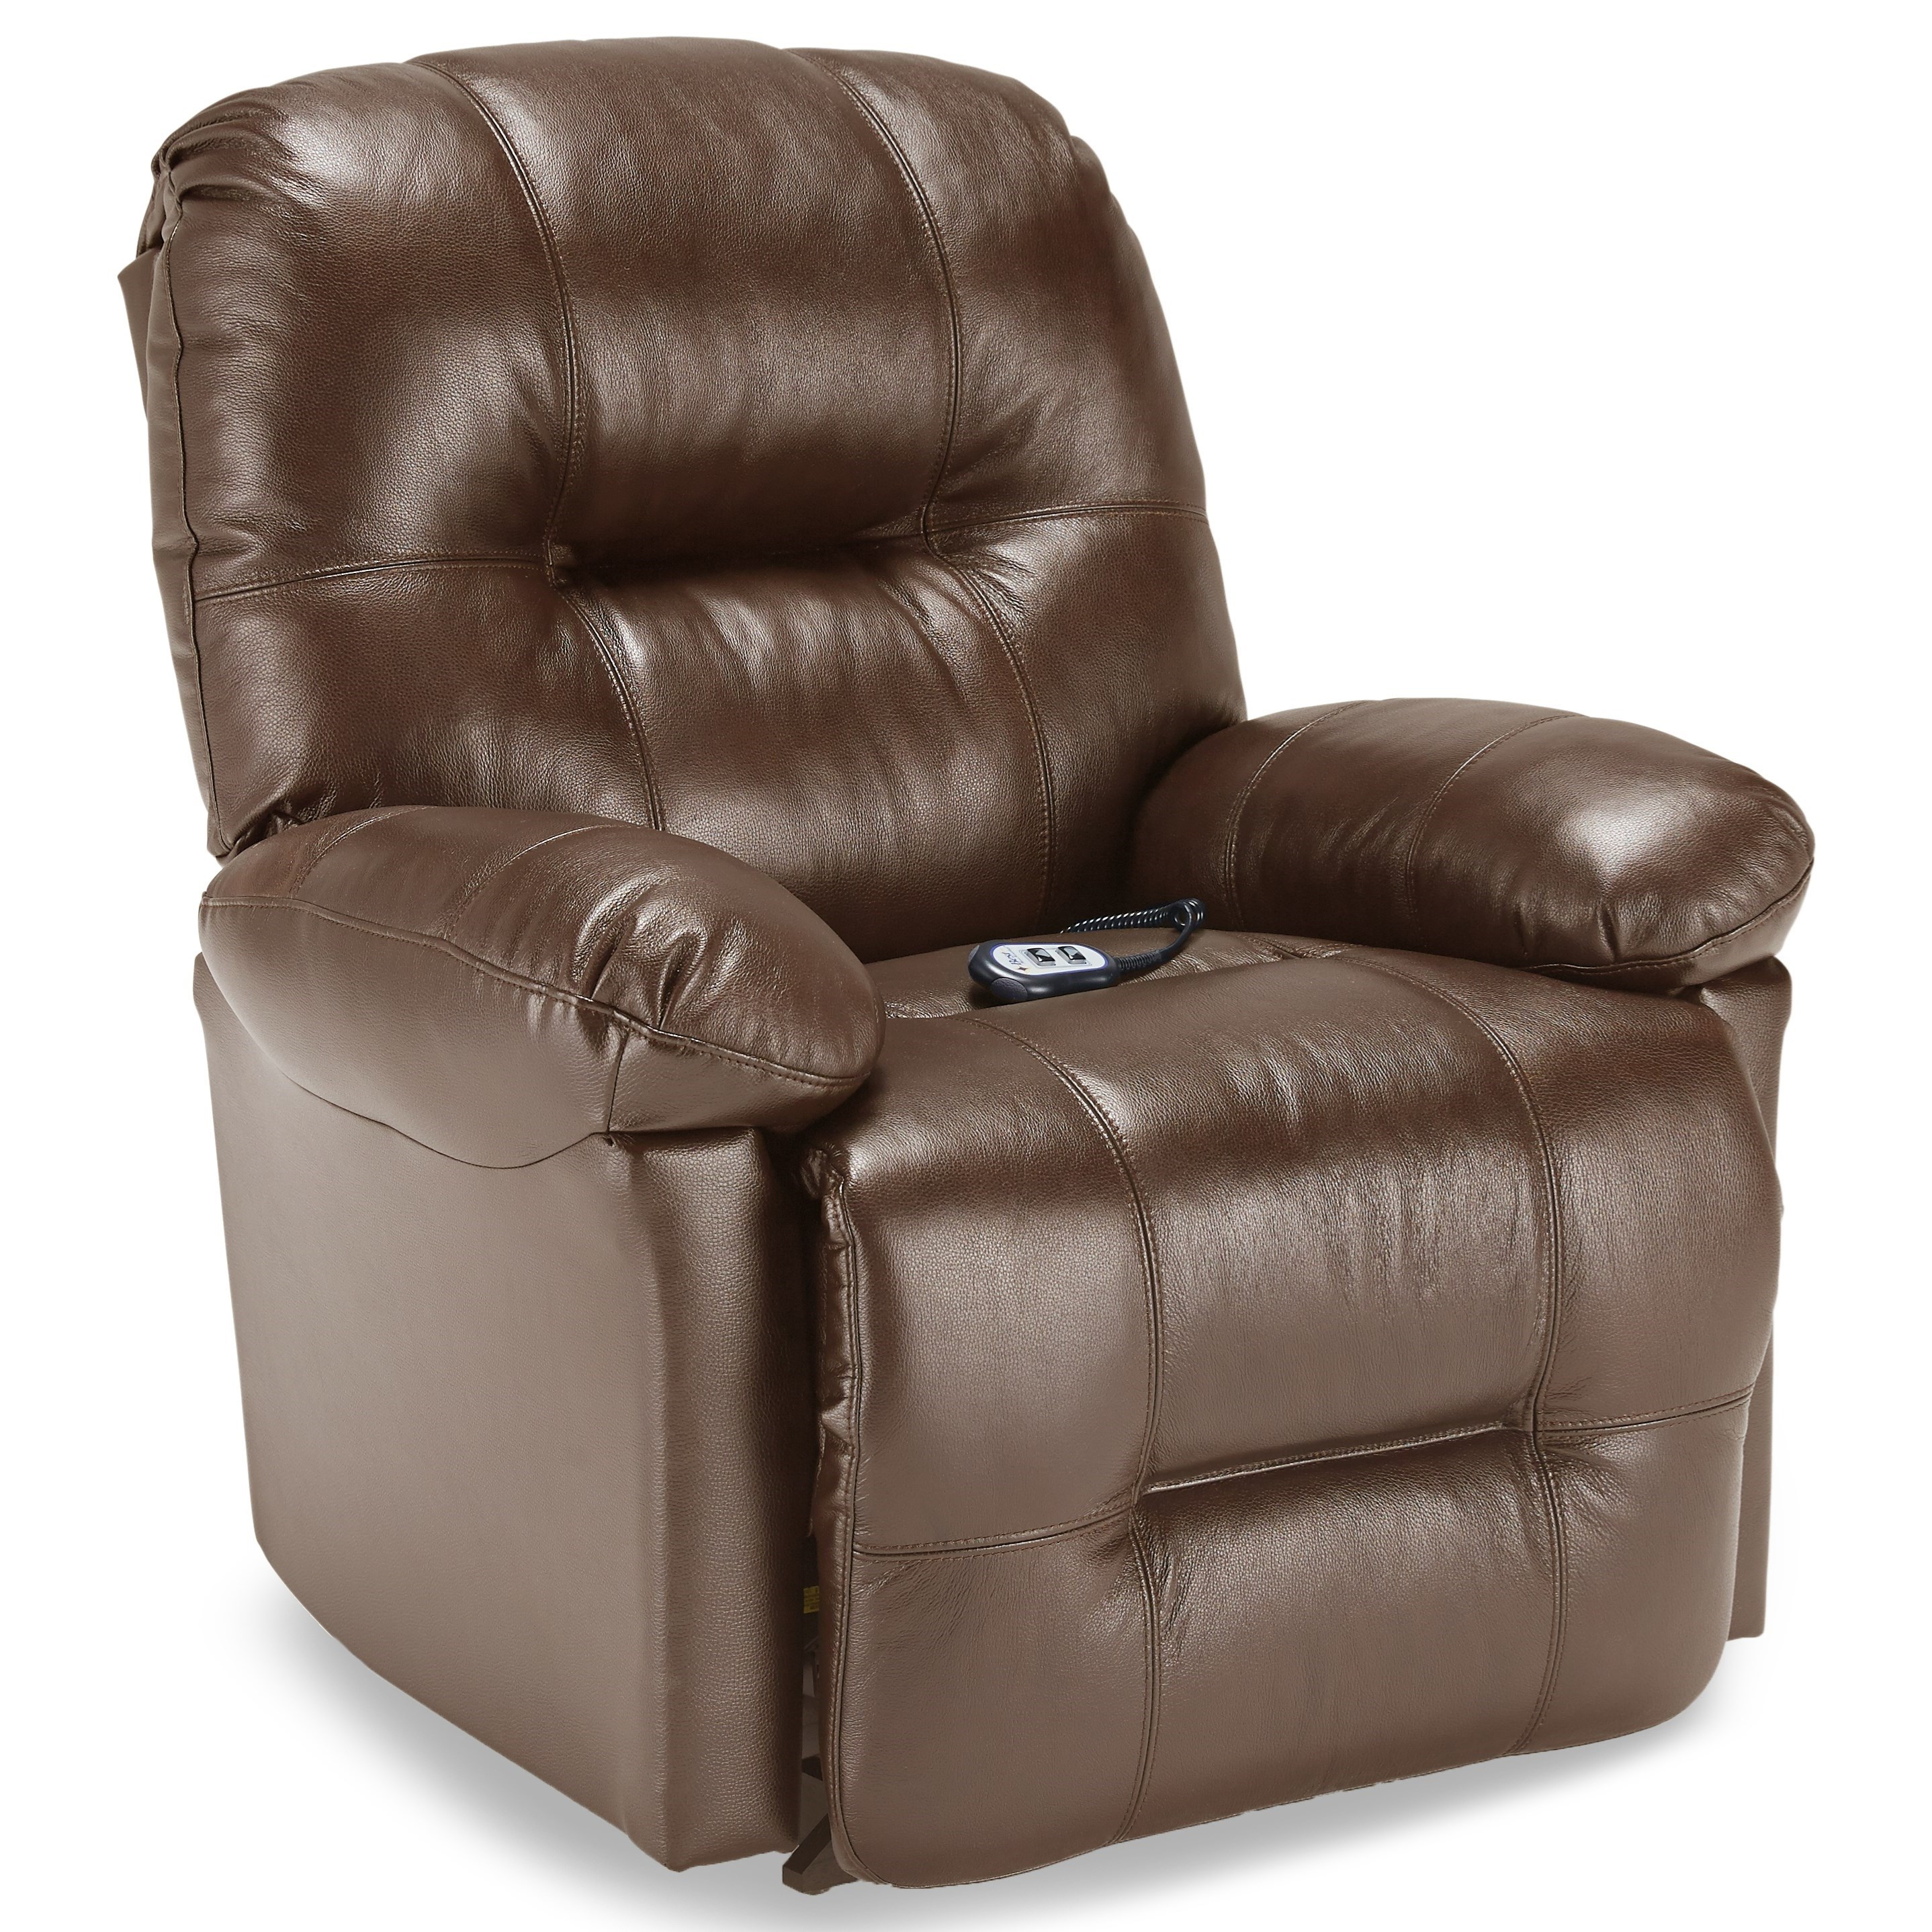 S501 Zaynah Power Lift Recliner by Best Home Furnishings at Baer's Furniture